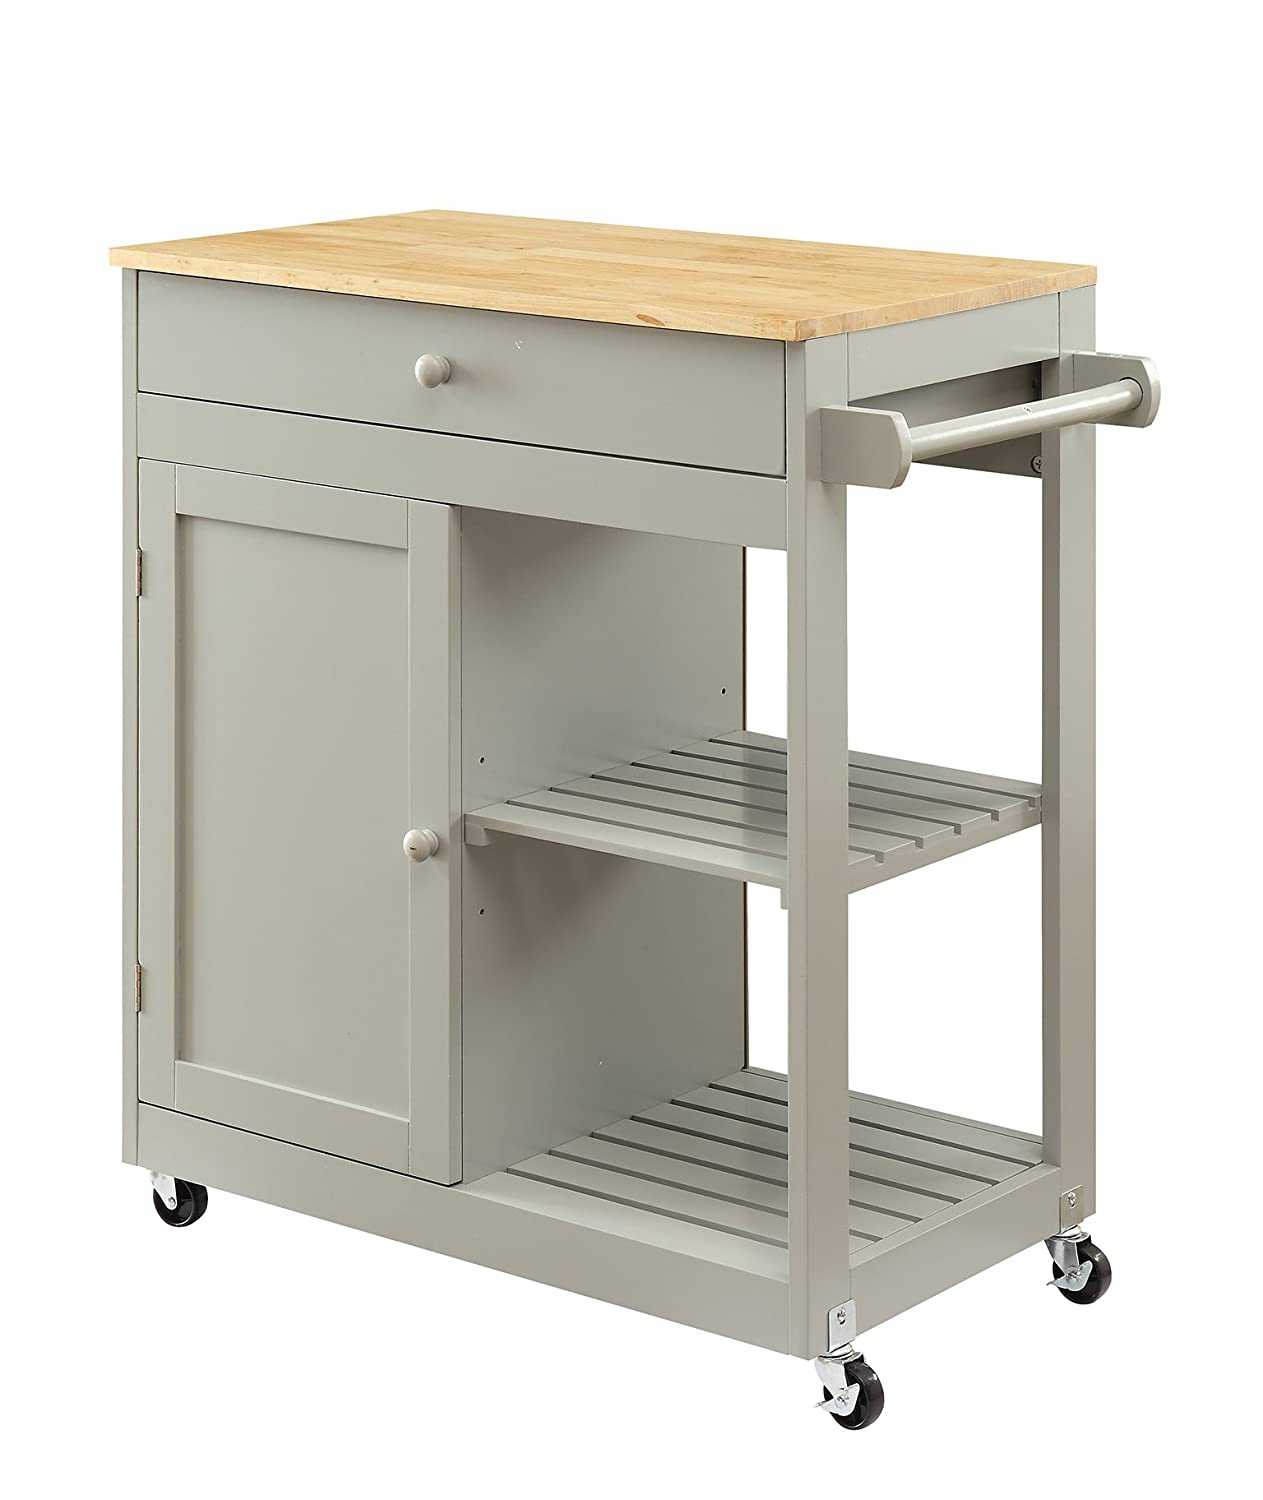 Design Mobile Kitchen Islands amazon com oliver and smith nashville collection mobile kitchen island cart on wheels wooden grey natural oak butcher block